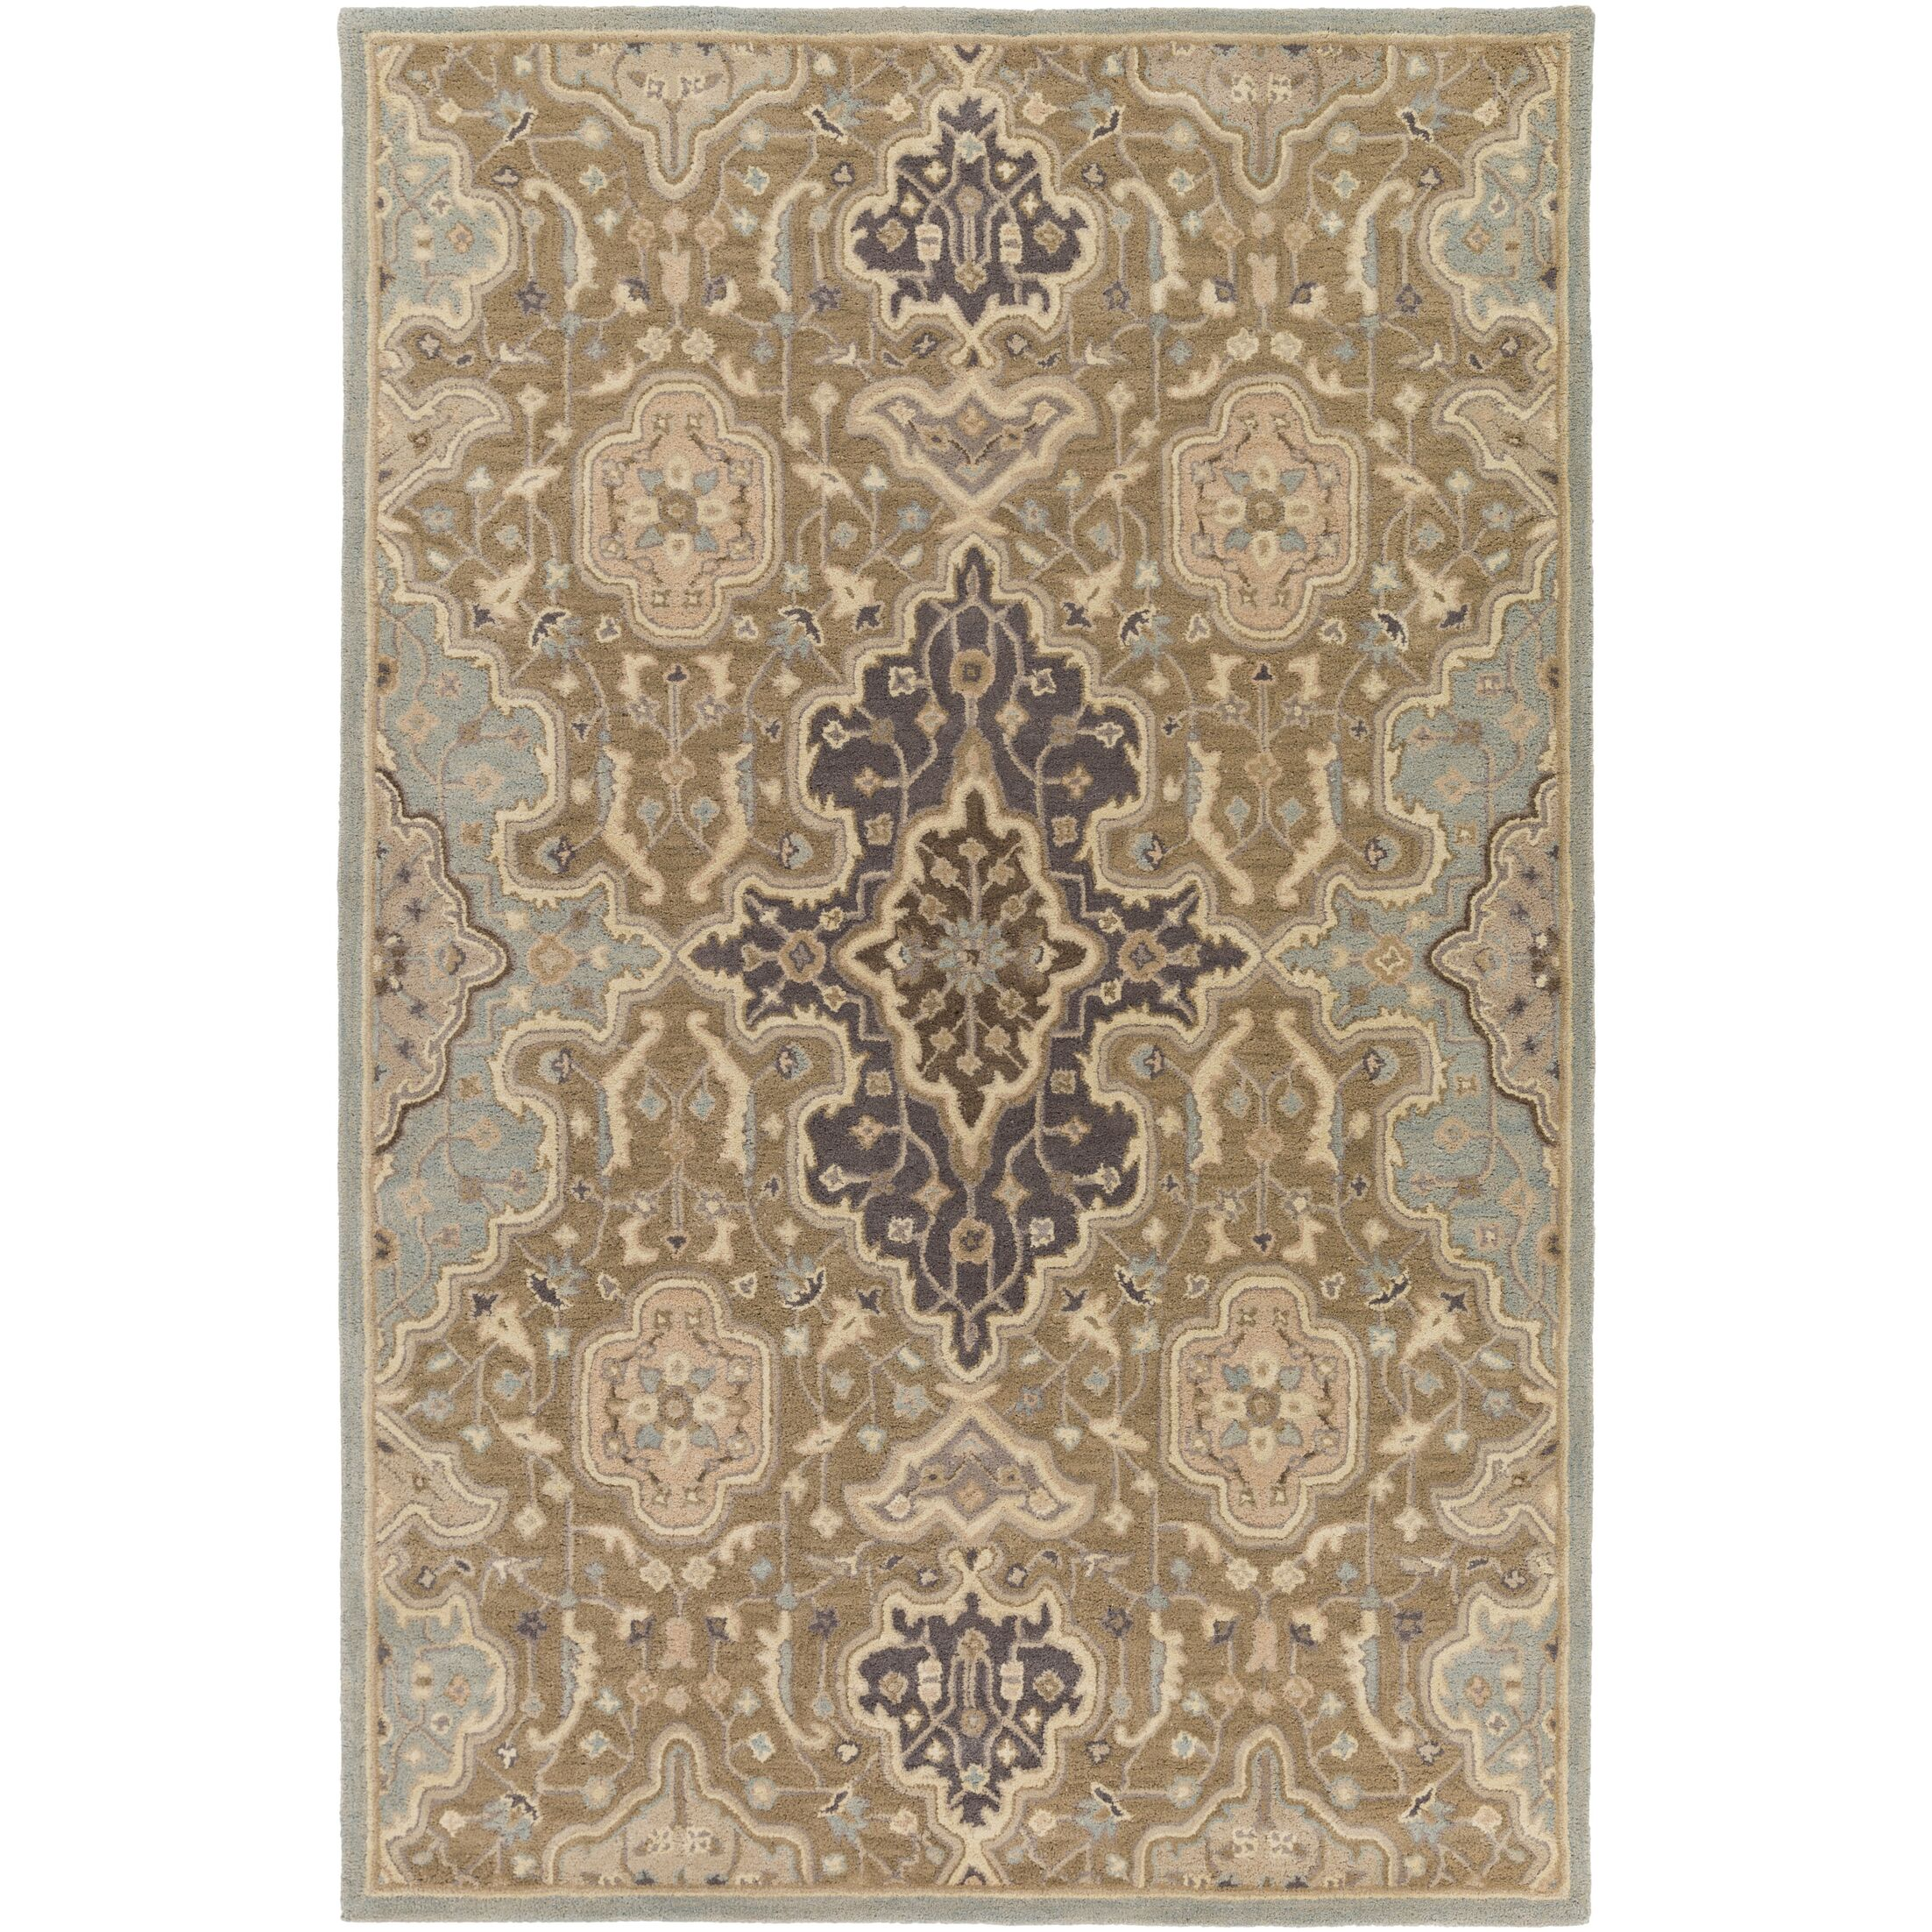 Ivan Hand-Tufted Oriental Taupe Area Rug Rug Size: Rectangle 5' x 7'6